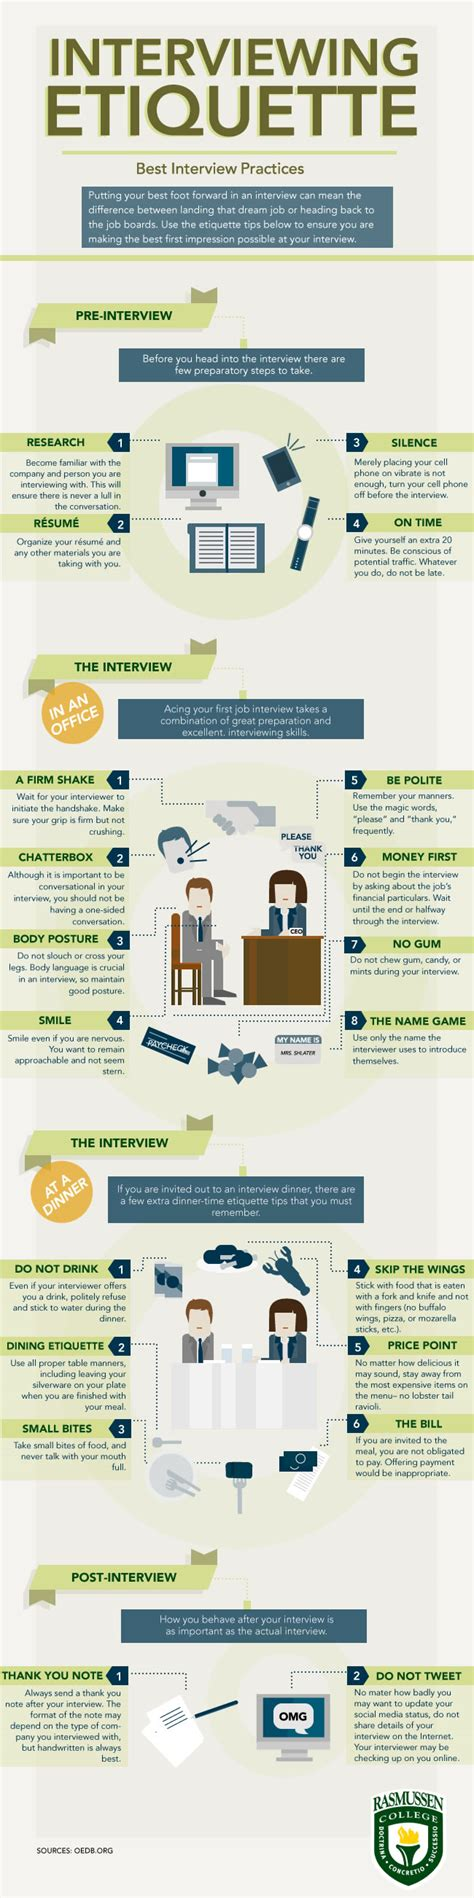 infographic job interview best practices and etiquette